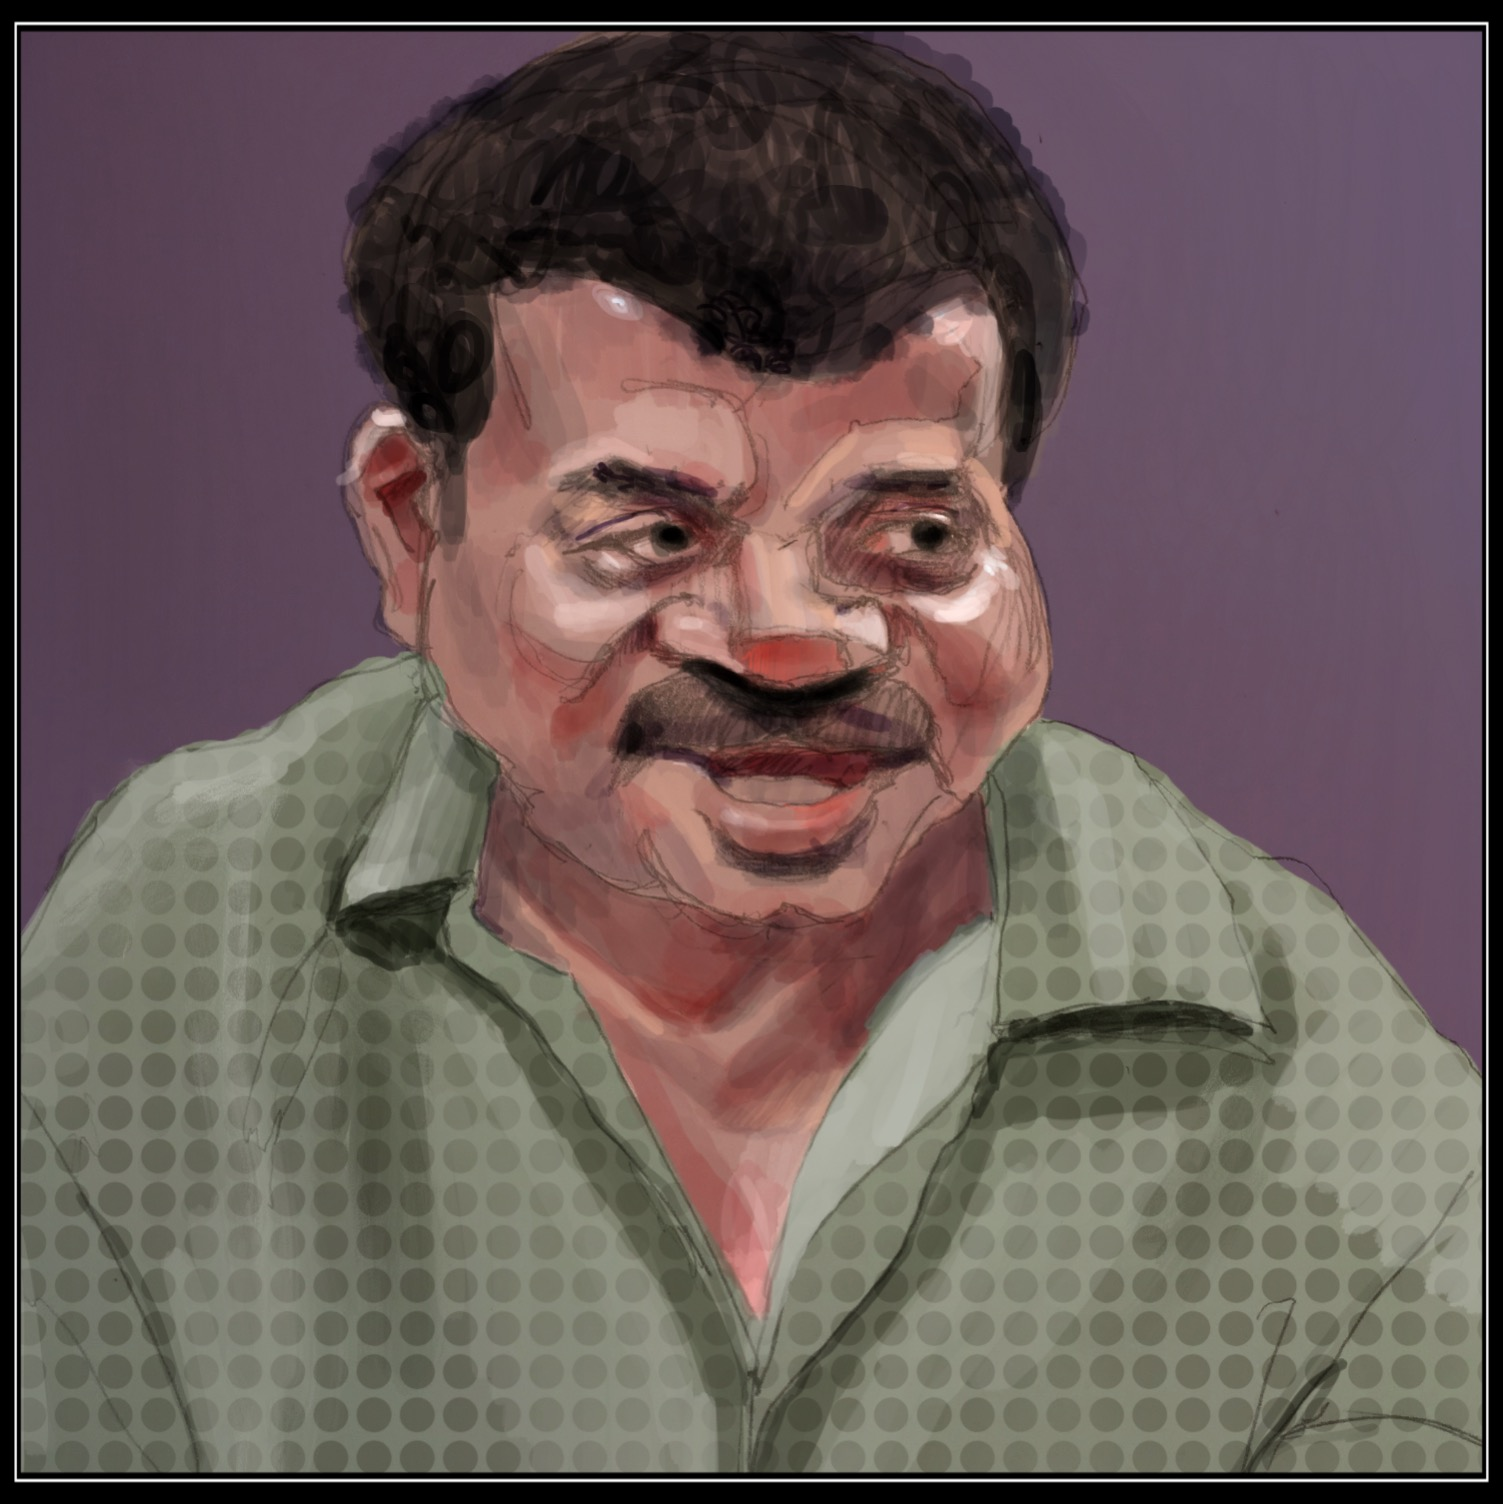 Neil Degrasse Tyson; astrophysicist and author